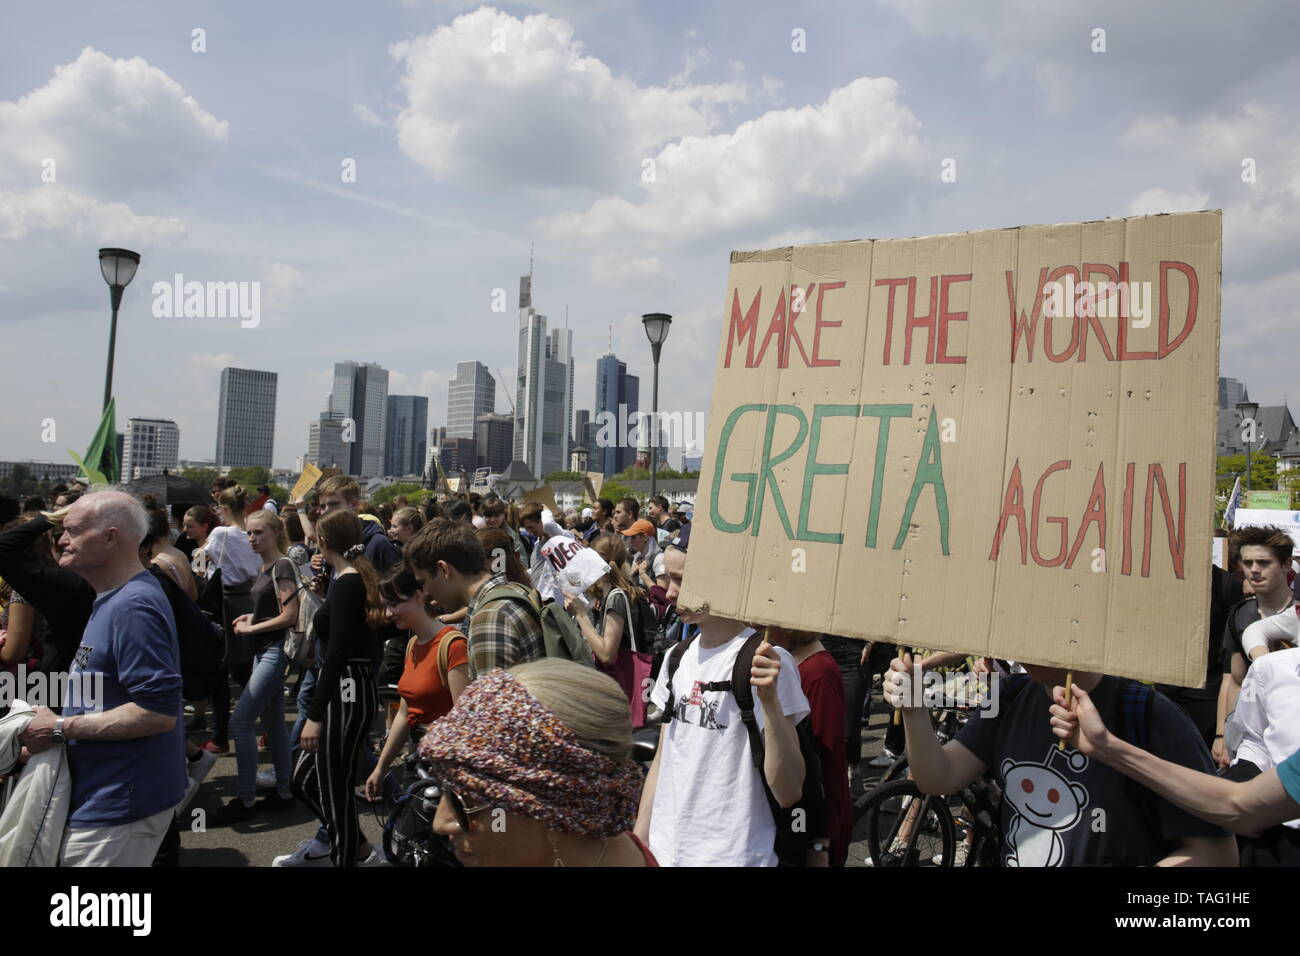 A protester carries a sign that reads 'Mate the World Greta again'. The Frankfurt skyline can be seen in the background. Around 4,500 young people marched through Frankfurt to the European Central Bank, to protest against the climate change and for the introduction of measurements against it. The protest took place as part of an Europe wide climate strike, two days ahead of the 2019 European elections. (Photo by Michael Debets/Pacific Press - Stock Image